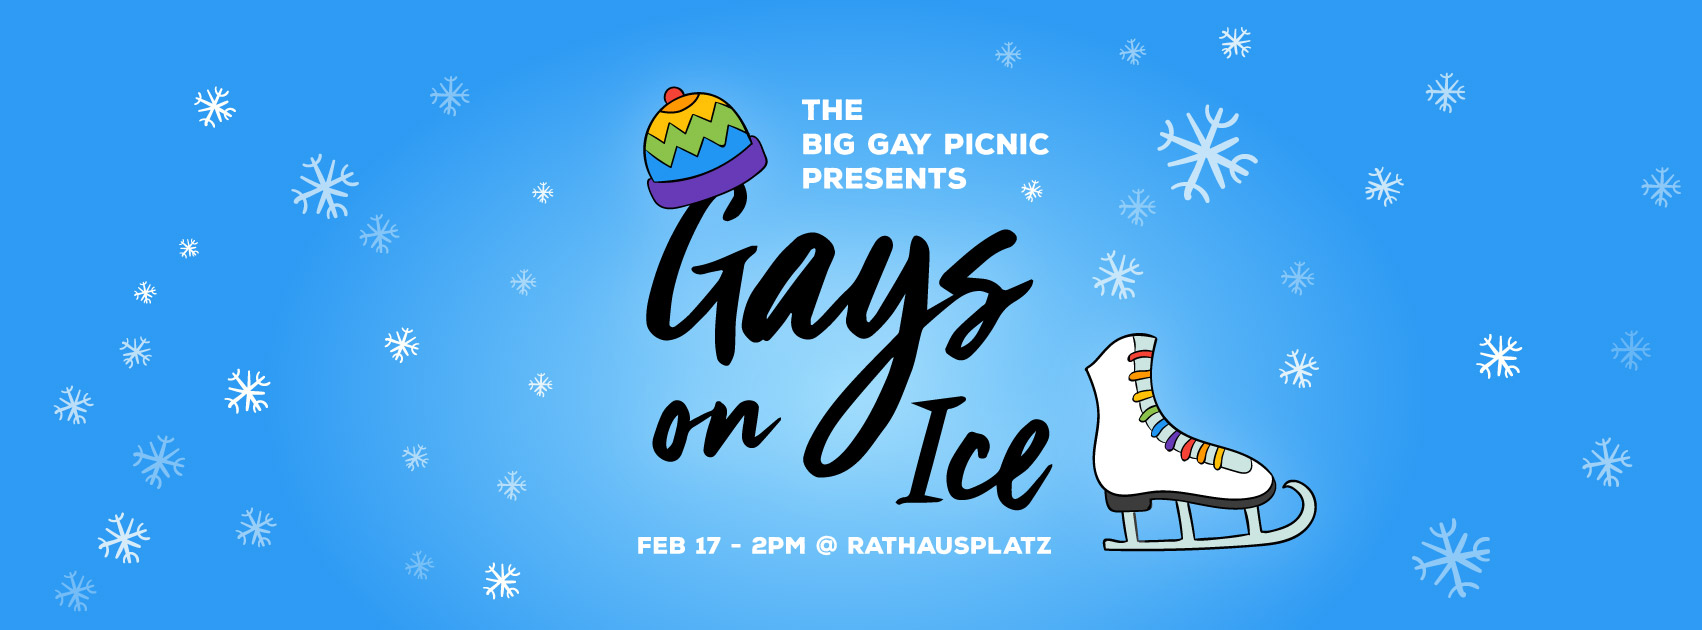 The Big Gay Picnic presents: Gays on Ice - February 17th 2018, 2PM at Wiener Eistraum, Rathausplatz